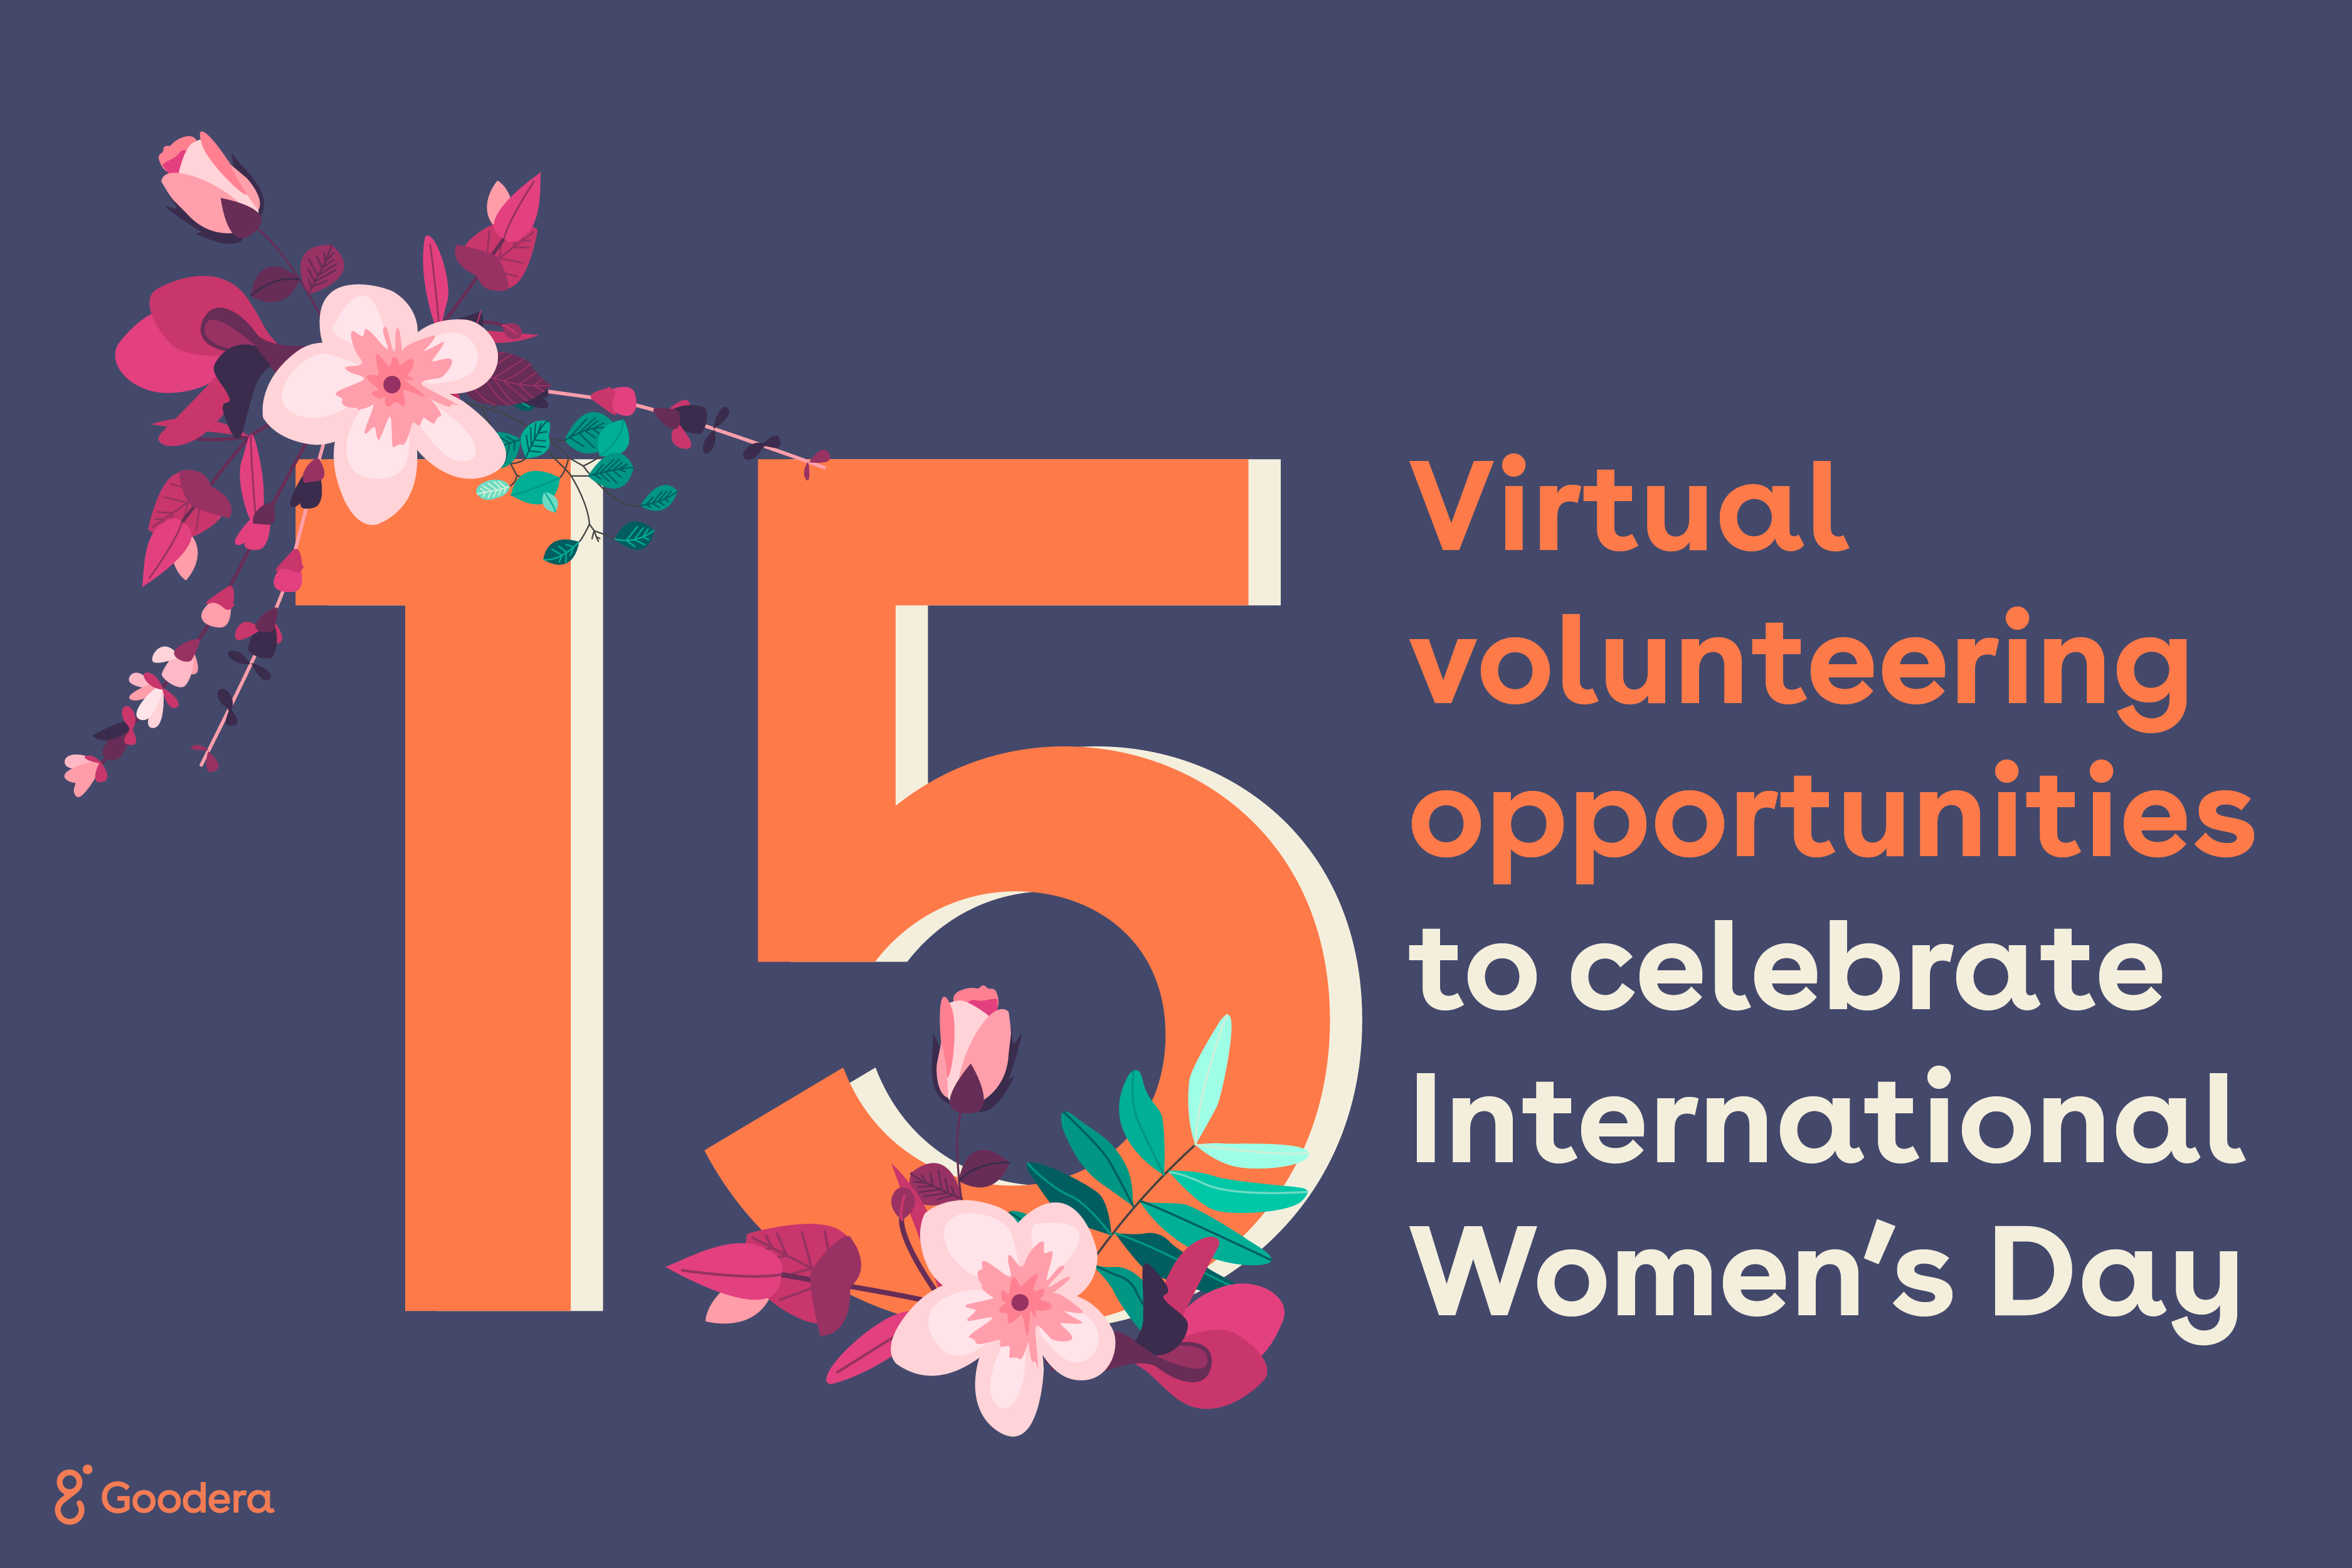 15 virtual volunteering opportunities to celebrate International Women's Day